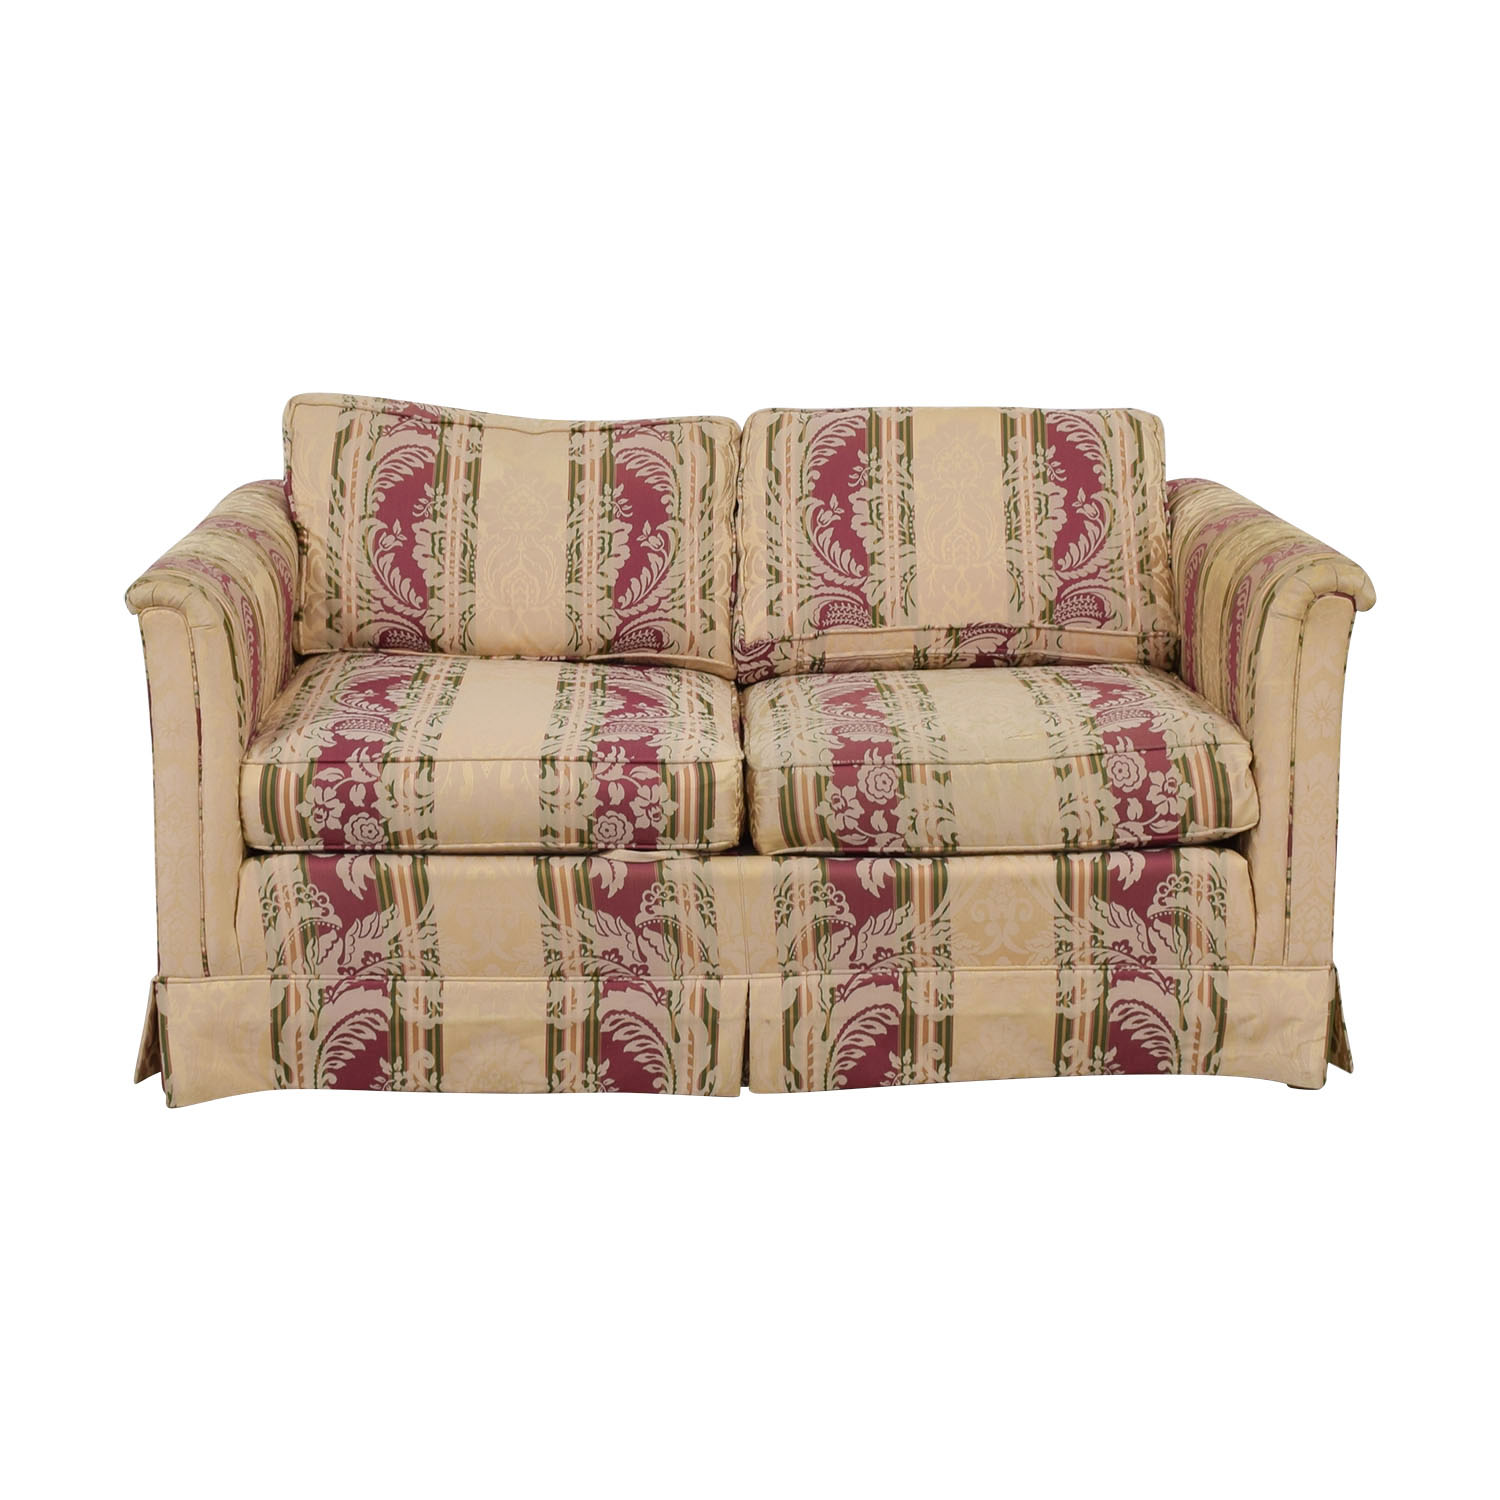 drexel heritage sofa prices how to deep clean cream leather used loveseats under 500